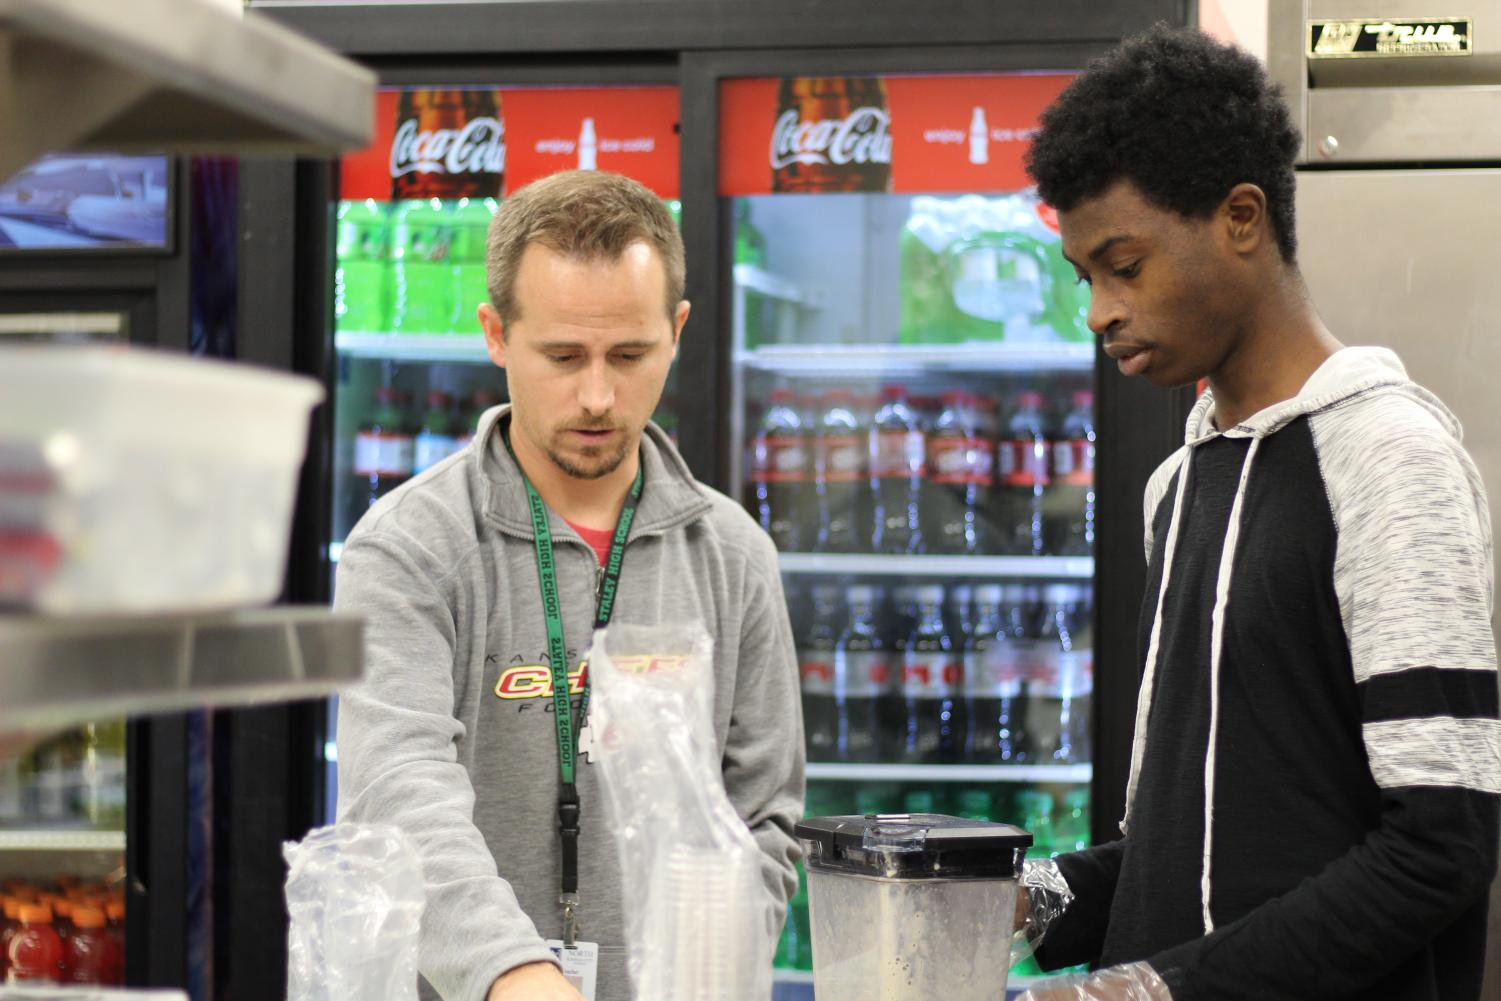 At the concession stand, junior Hashim Abu prepares smoothies with ELL teacher Travis Mauzey Nov.16. Abu manages the money raised and paperwork for the smoothie production.